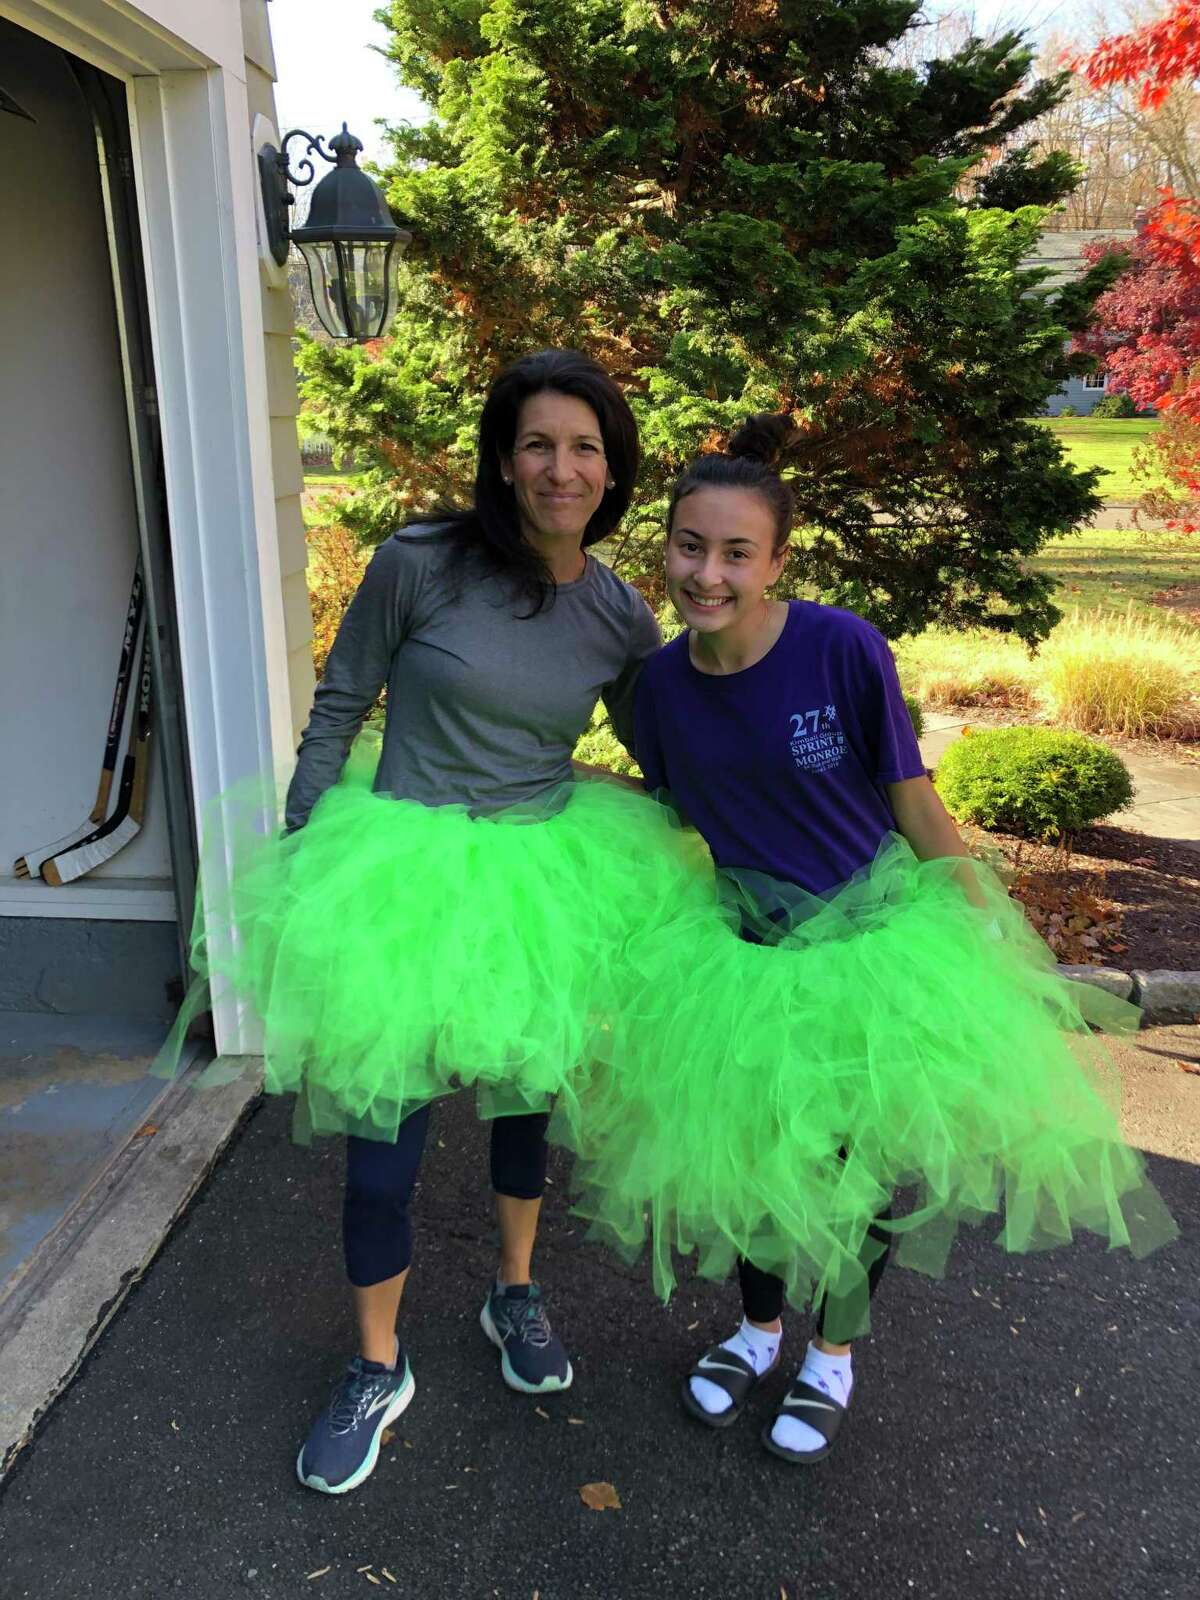 Mari and Brianna Jackson removed 24 pounds of trash from Tashua Knolls in style during the Nov. 8 town-wide virtual cleanup hosted by Sustainable Trumbull and Save the Sound.